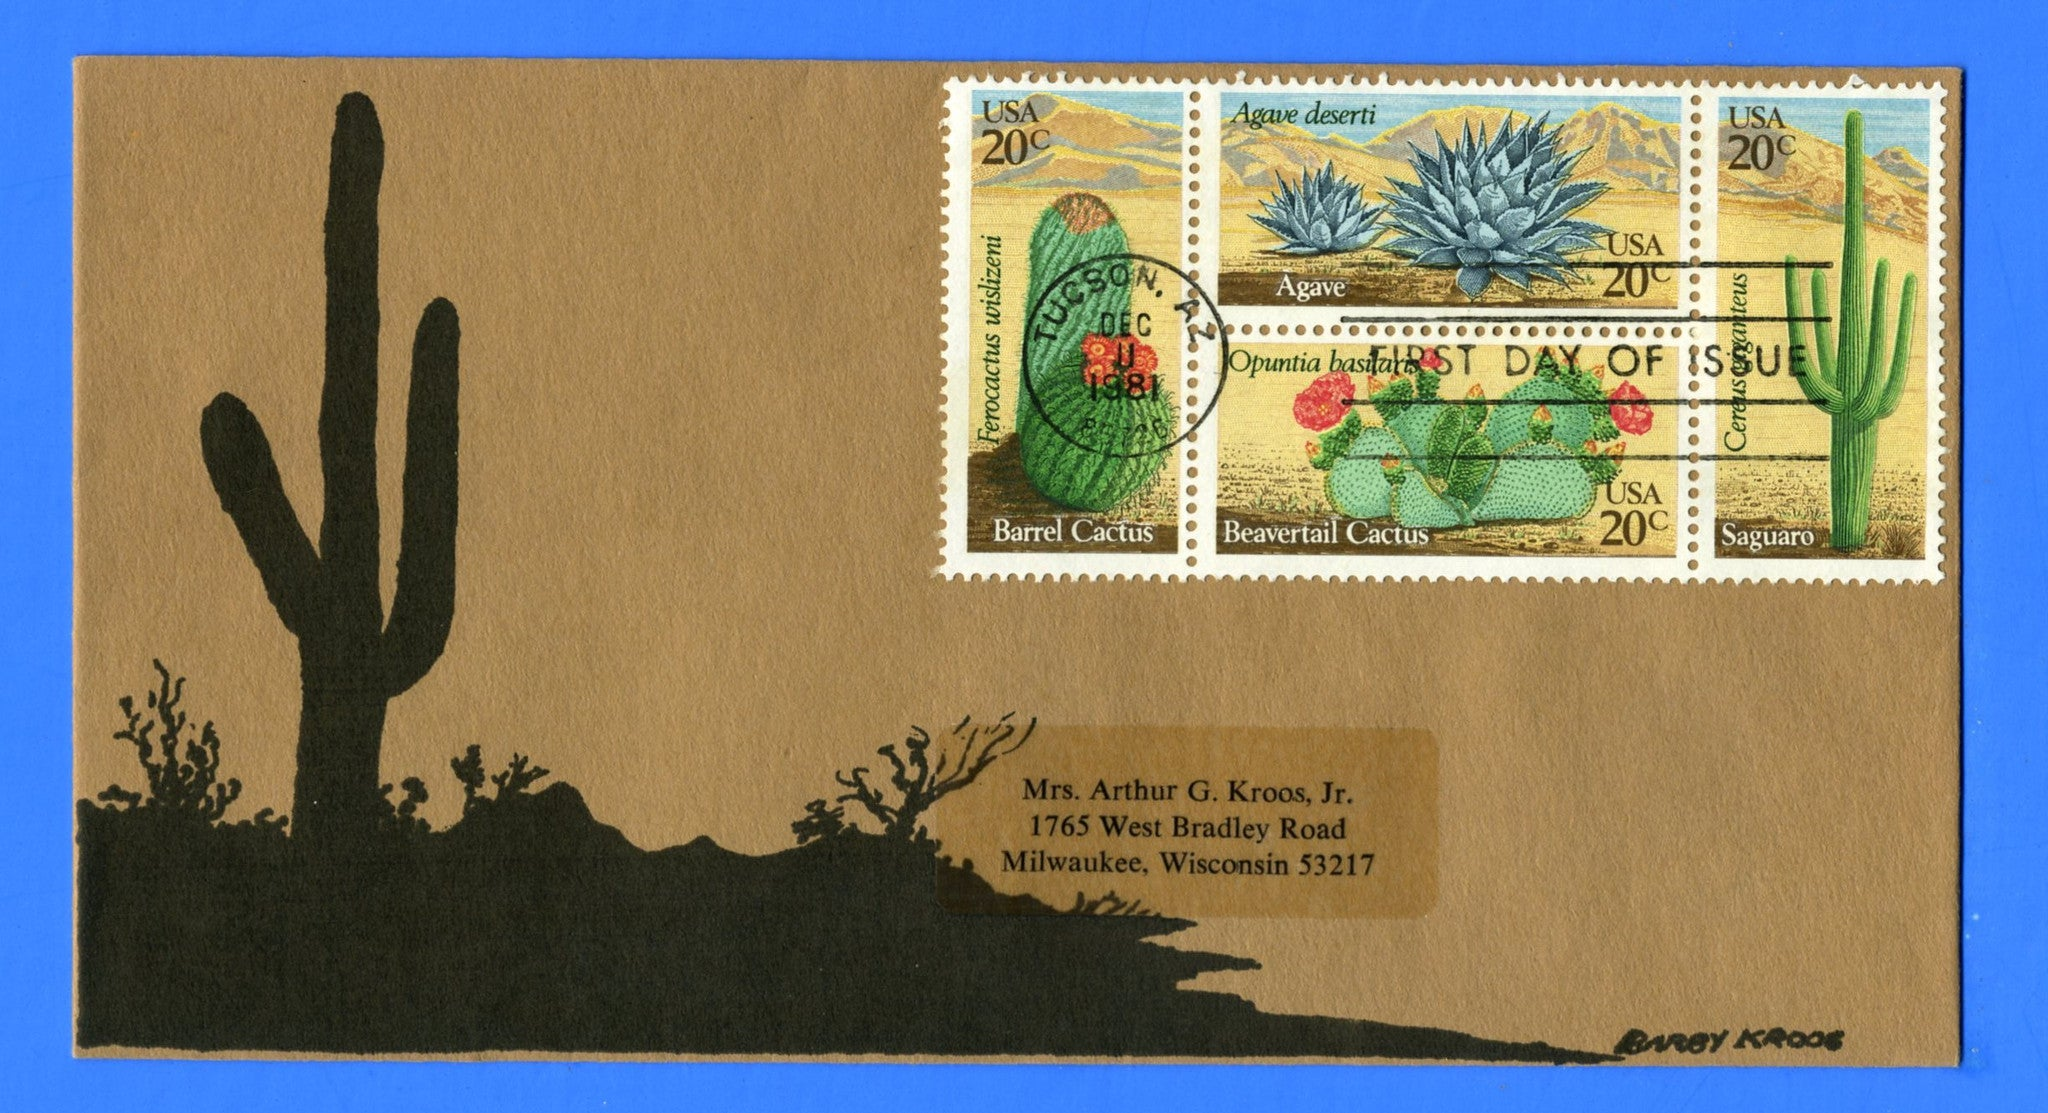 Scott 1945a Cactus, Desert Flowers First Day Cover by Barby Kroos